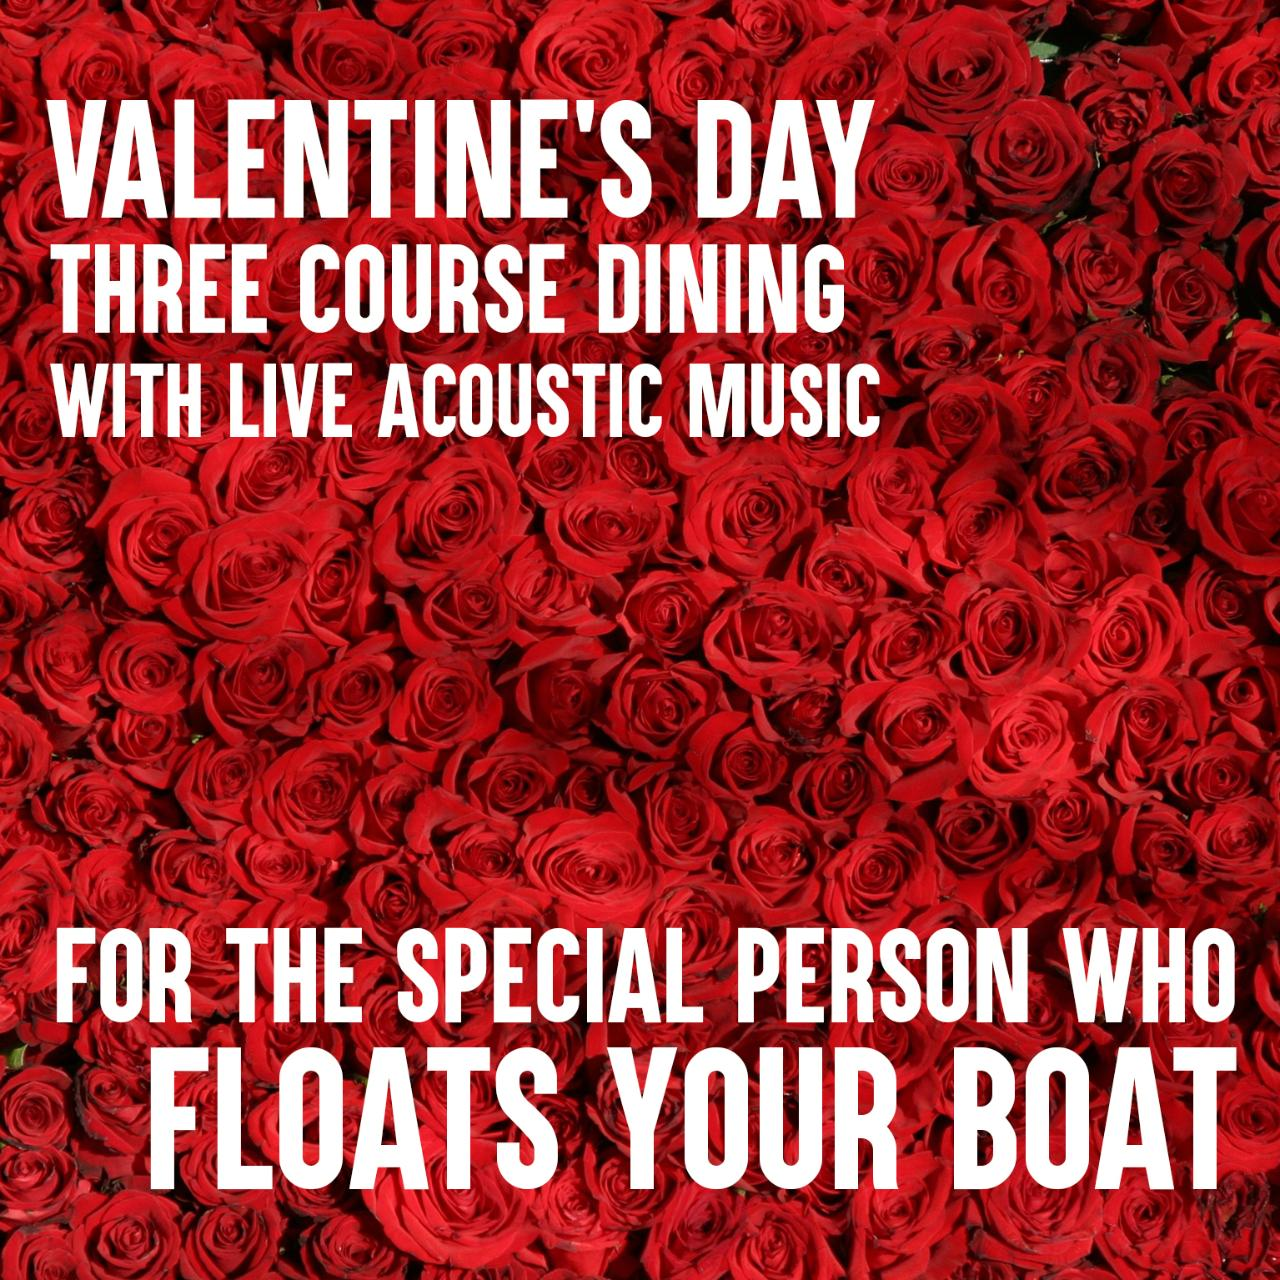 Valentine's Day - Romantic 3 Course Dining Cruise